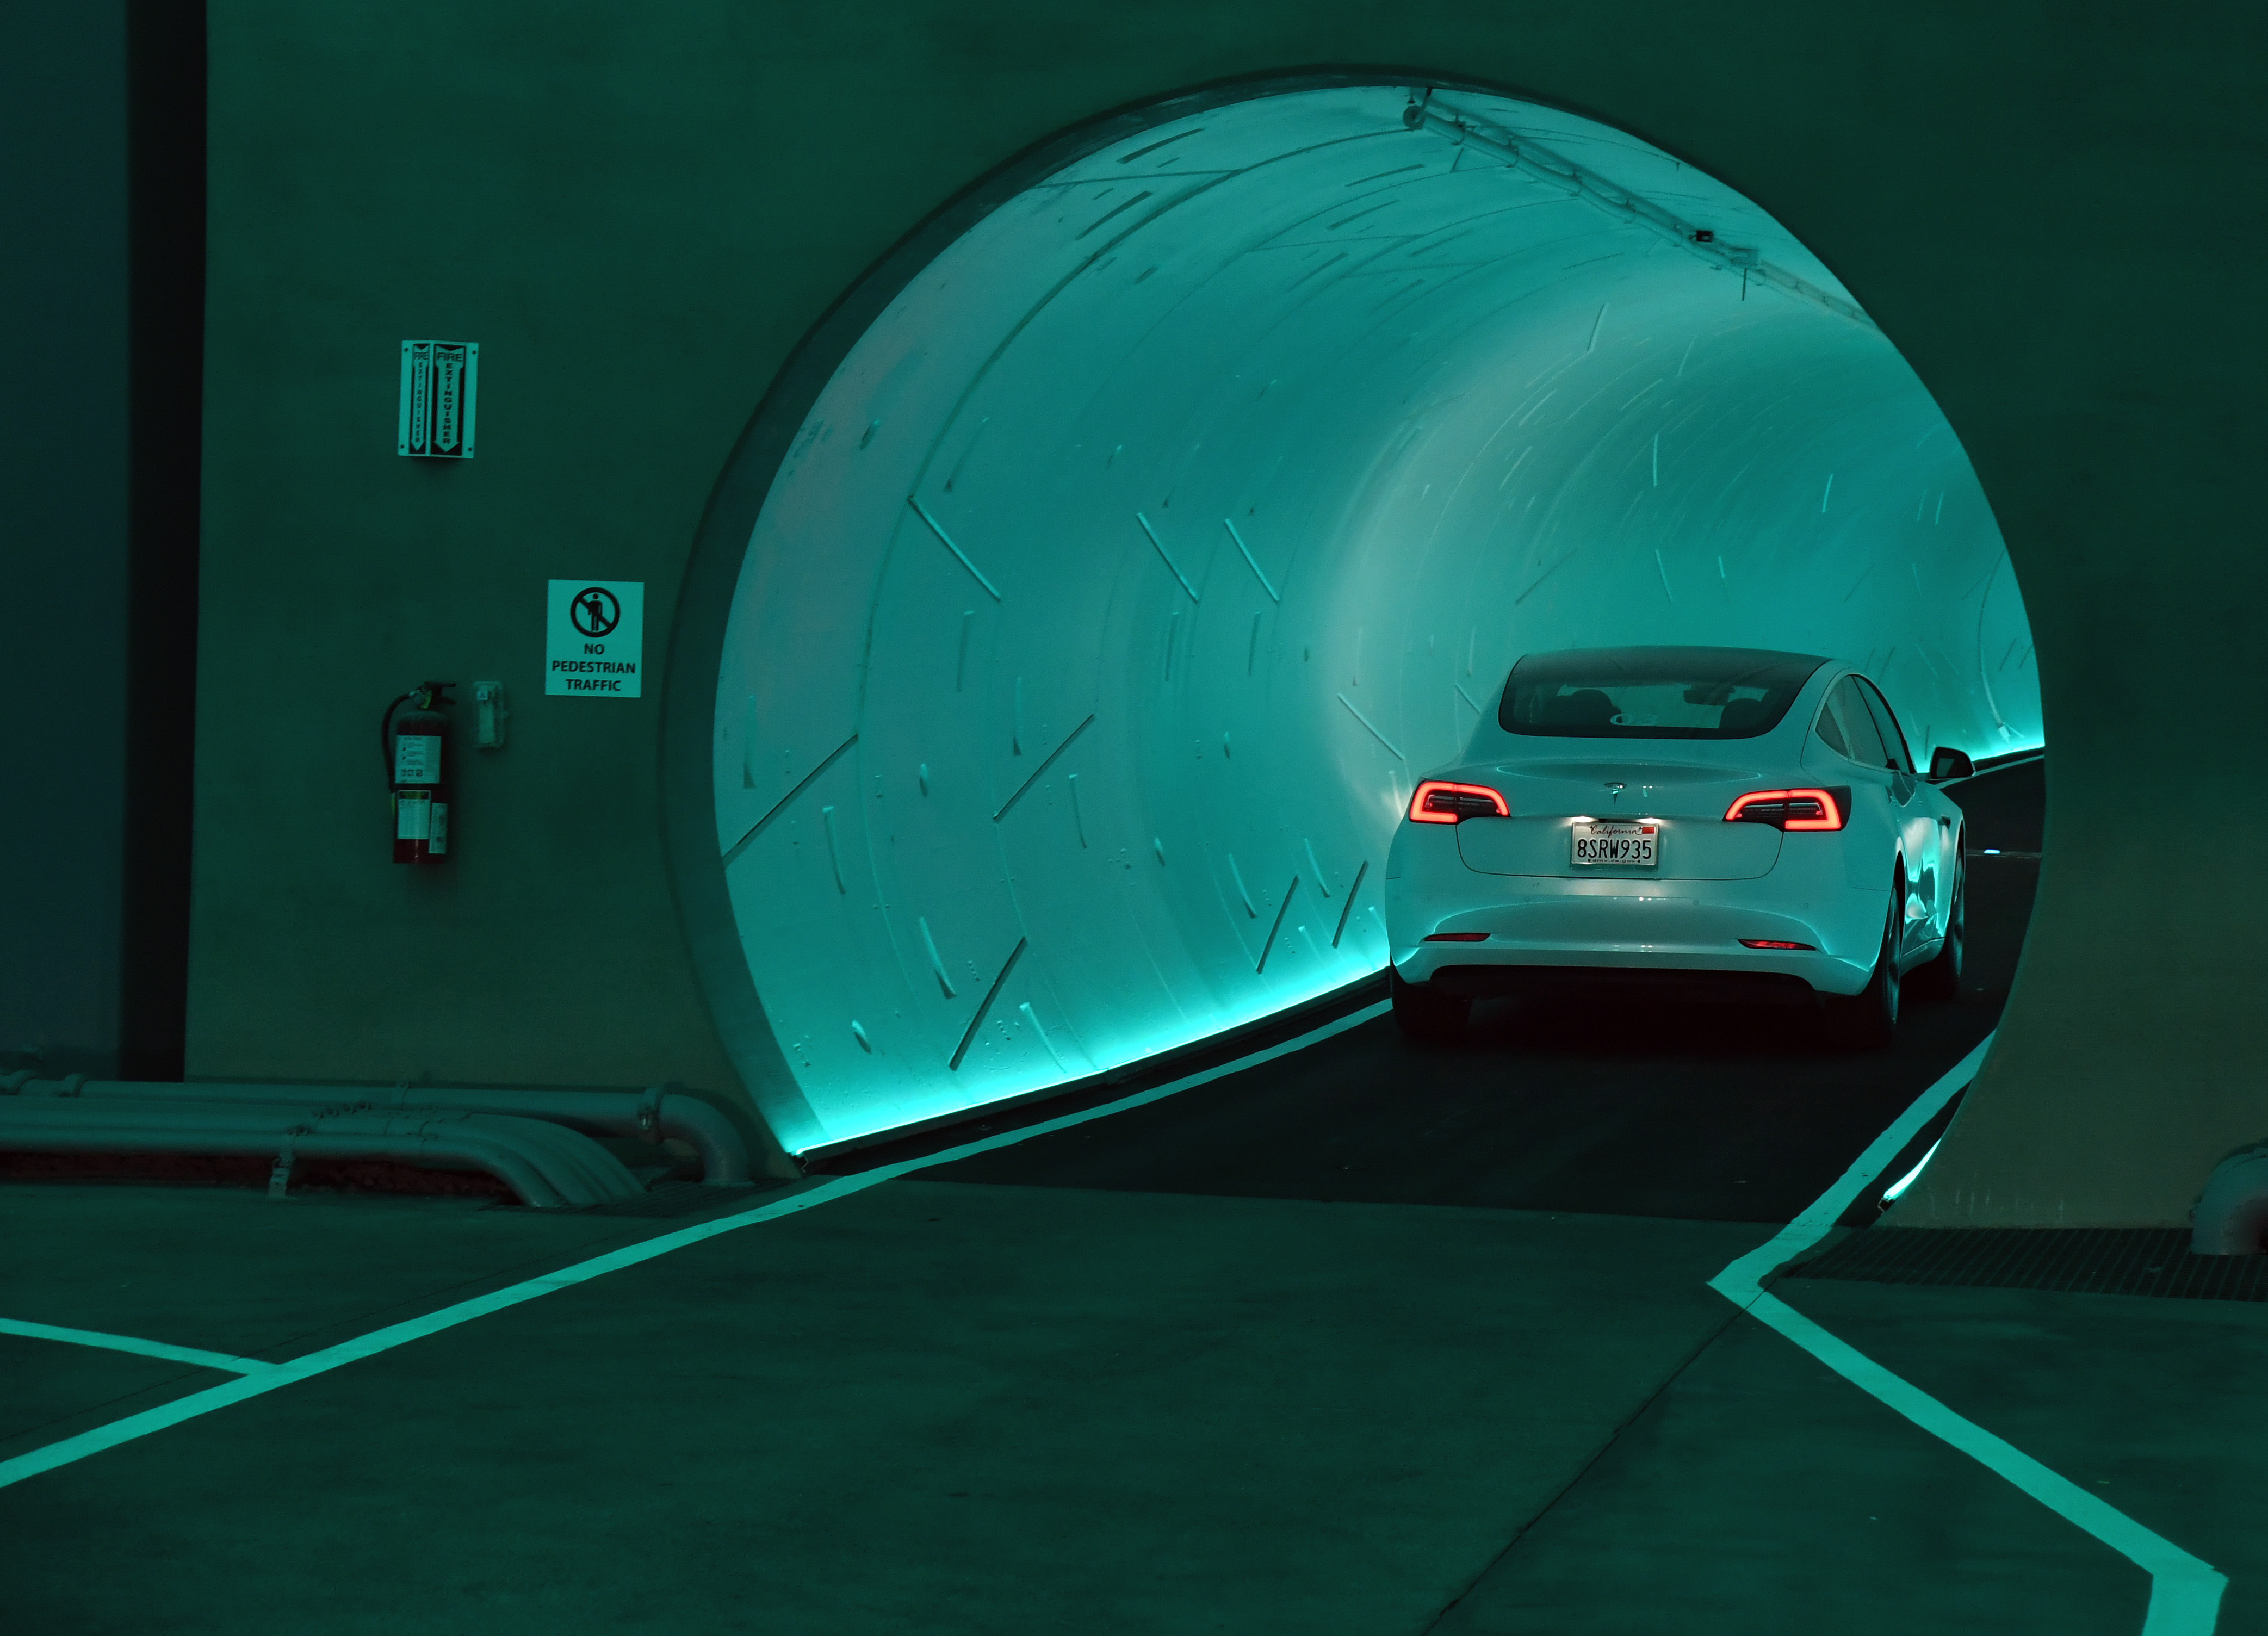 A car driving into a tunnel.